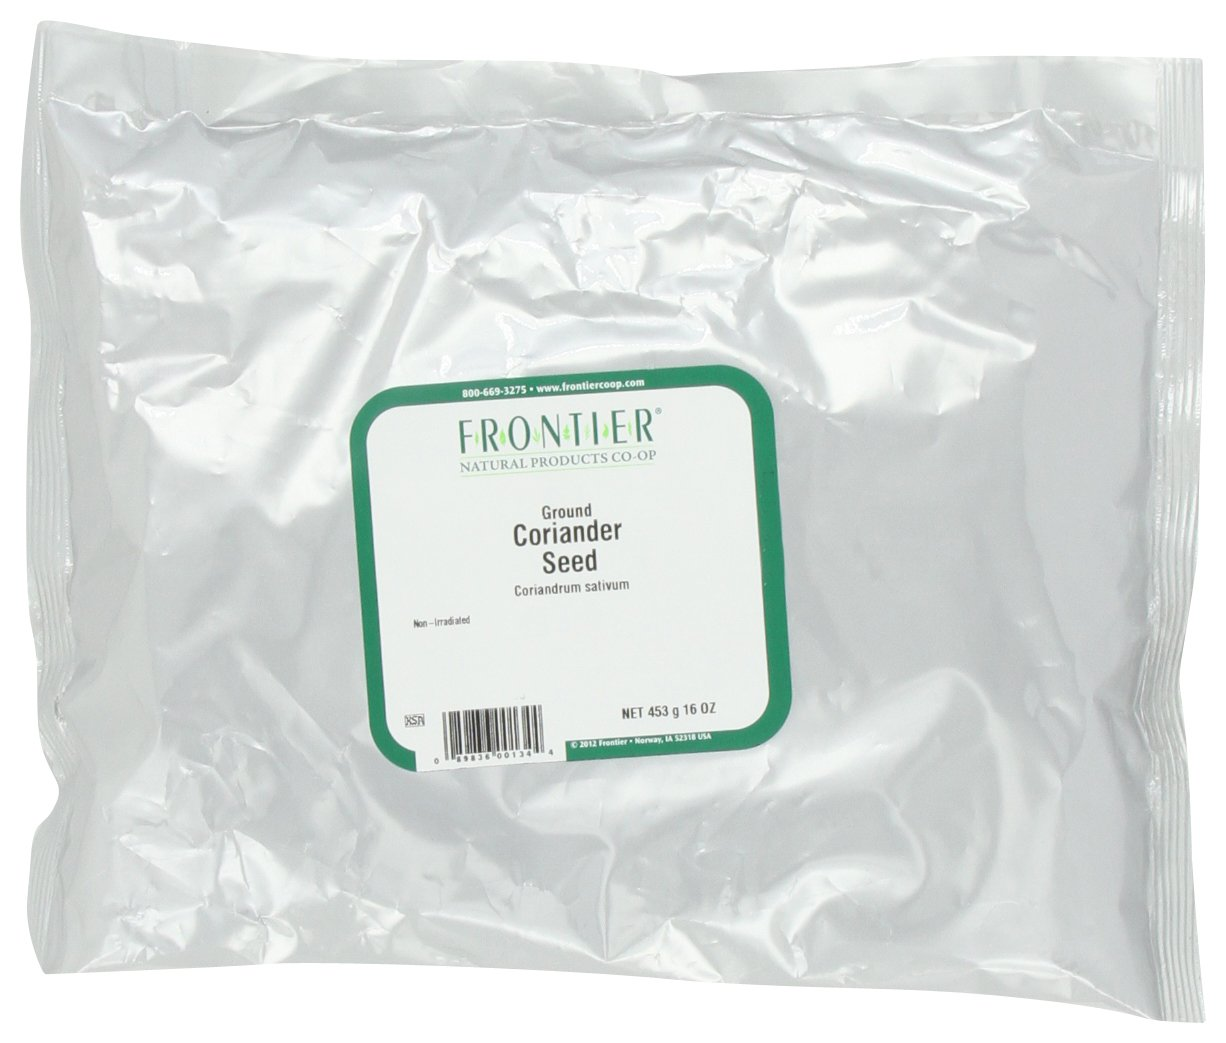 Frontier Coriander Seed Powder, 16 Ounce Bags (Pack of 2)